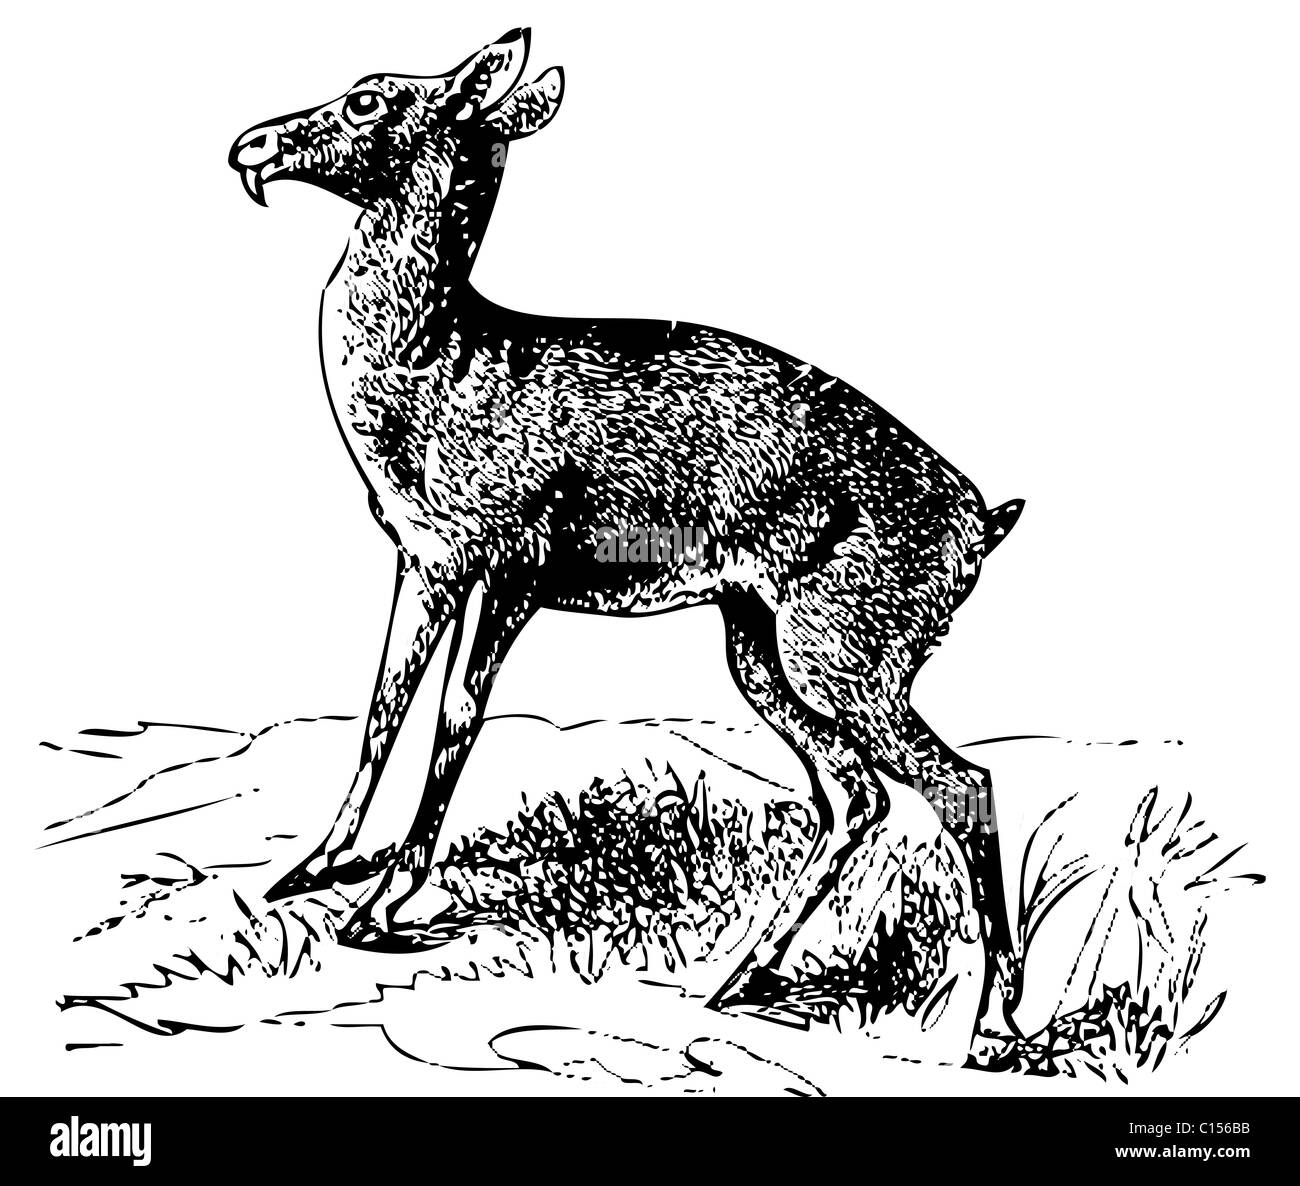 Old engraved illustration of a Siberian musk deer or moschus moschiferus - Stock Image